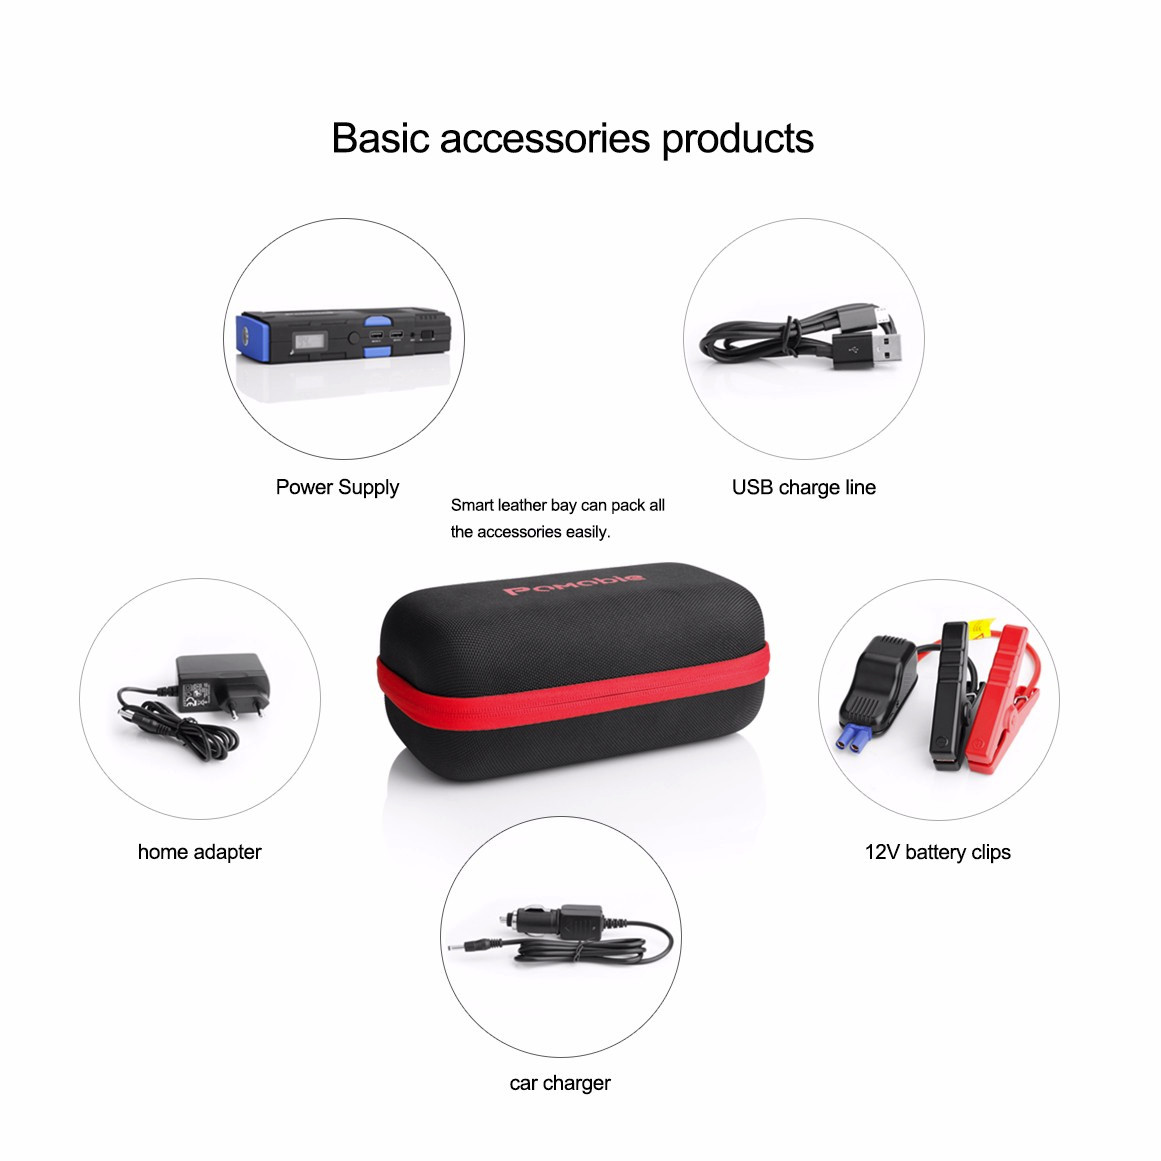 Us 64 77 30 Off Bolt Power D11 600 Amp Peak 16500mah Portable Car Battery Jump Starter For Cell Phone Fast Charging Mobile External In Chargers From